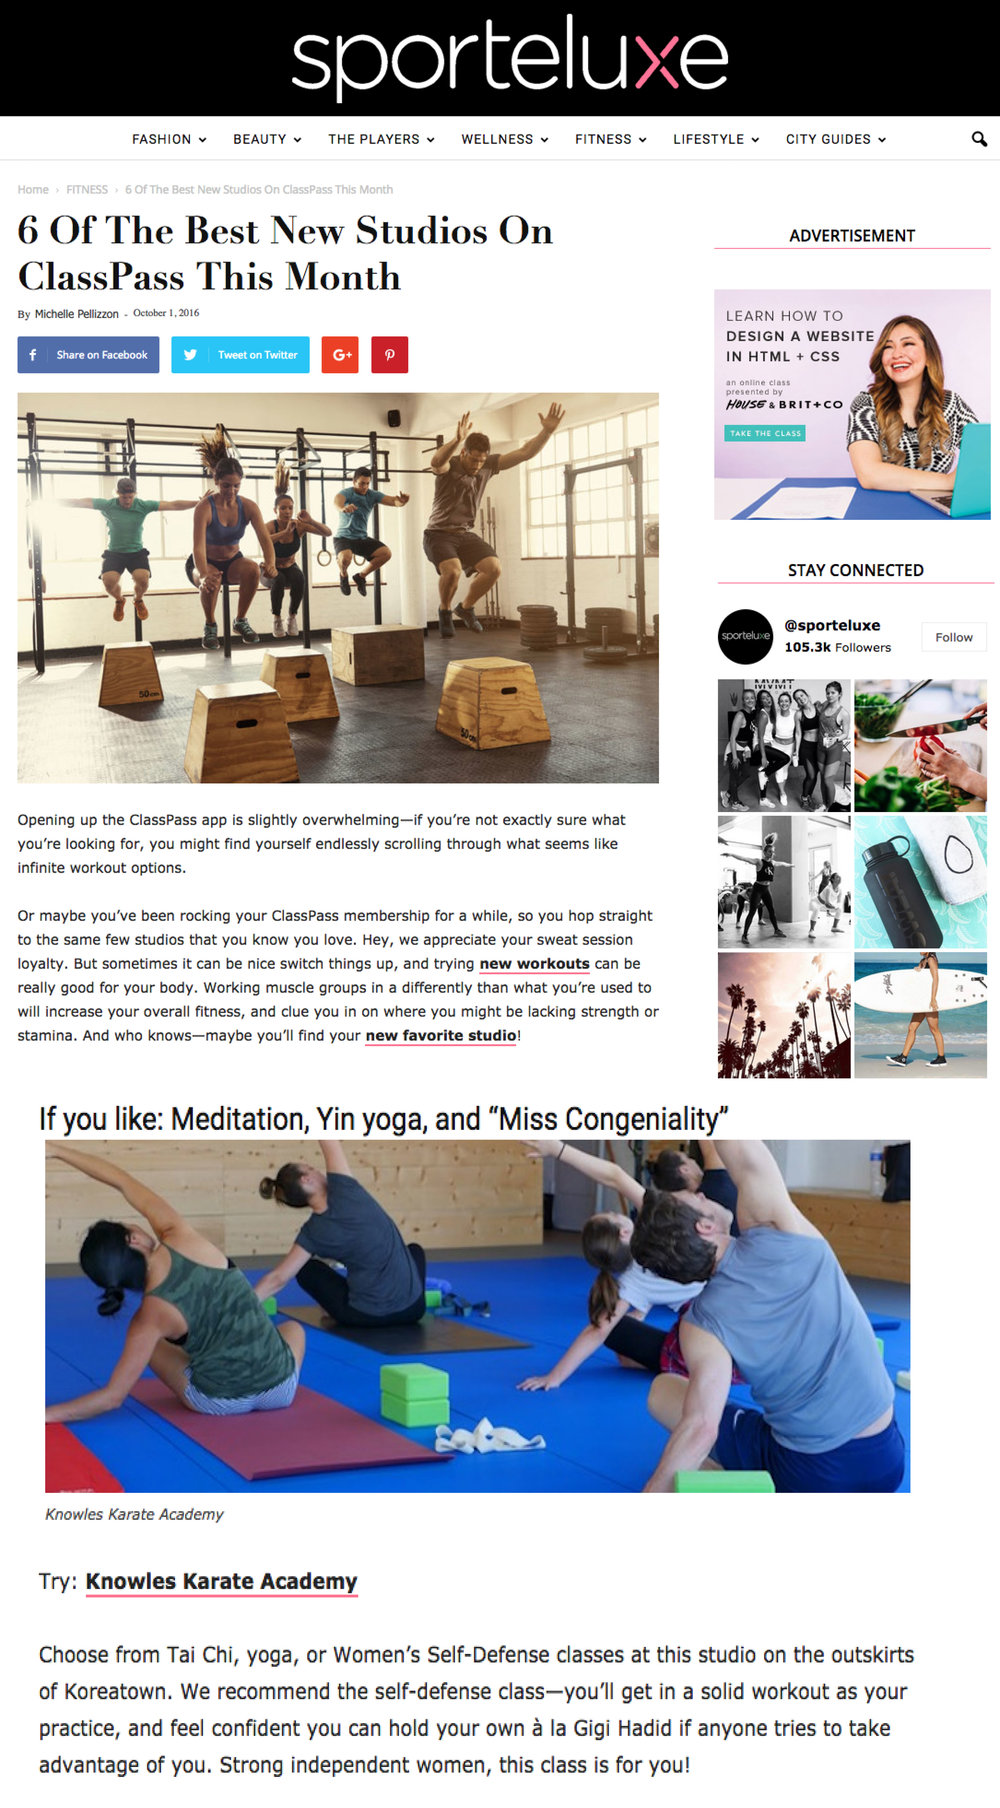 A shout-out from the blog SPORTELUXE as one of the best new 6 studios on ClassPass !  See blog post here